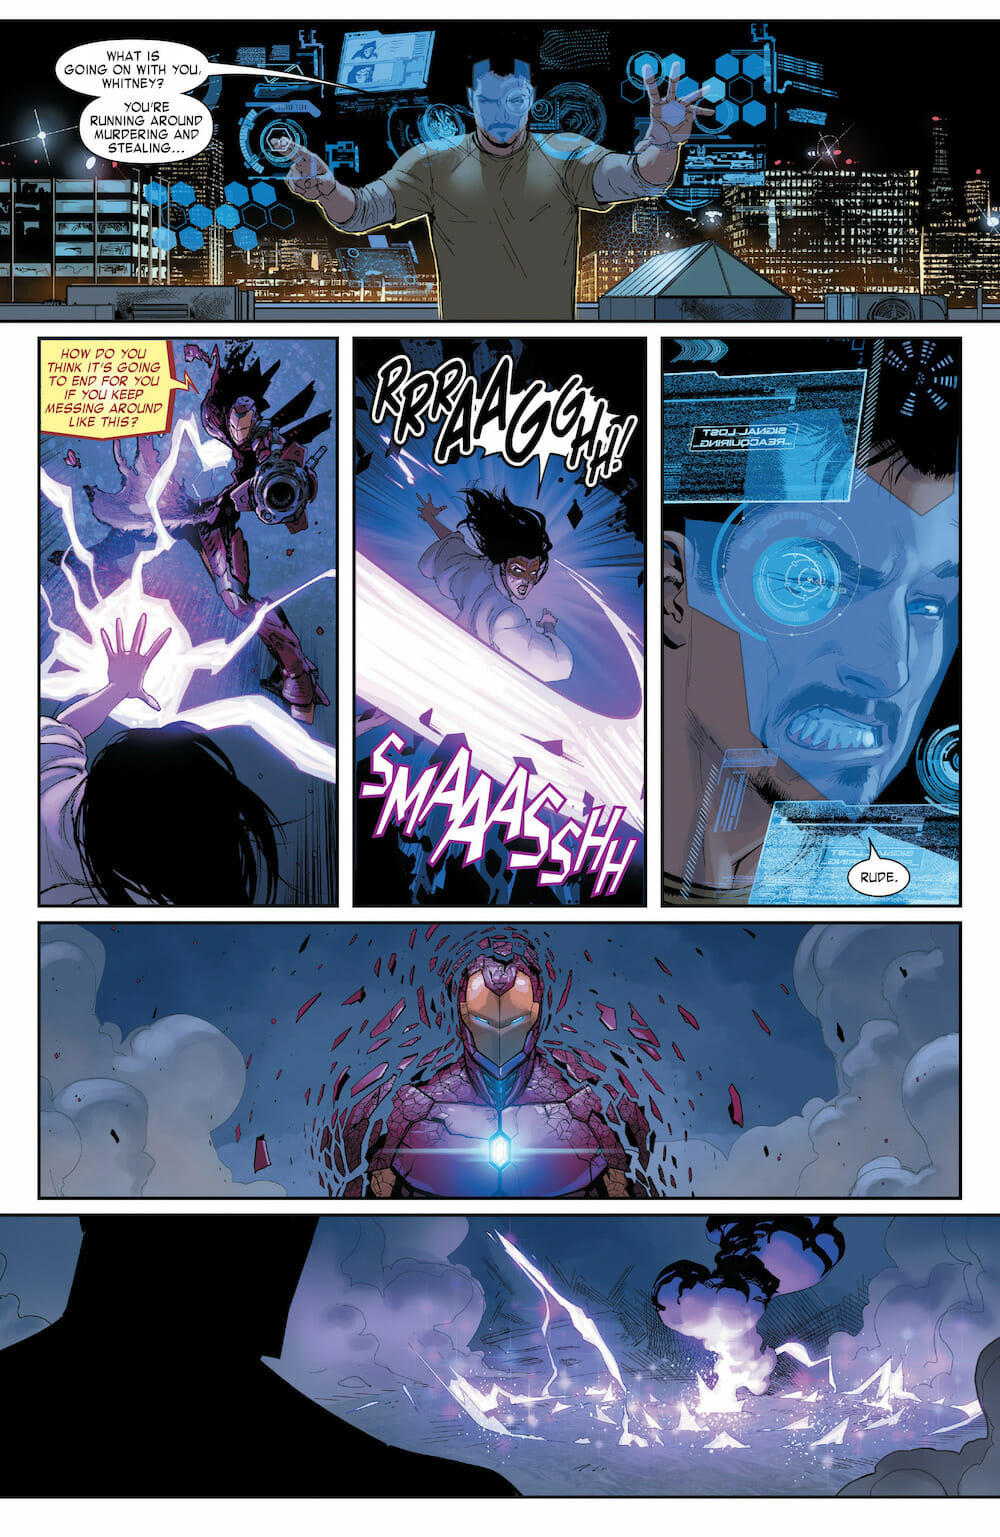 iron man 3 review Invincible iron man #3 features a more powerful, more deranged madame masque than ever before see why in our review.